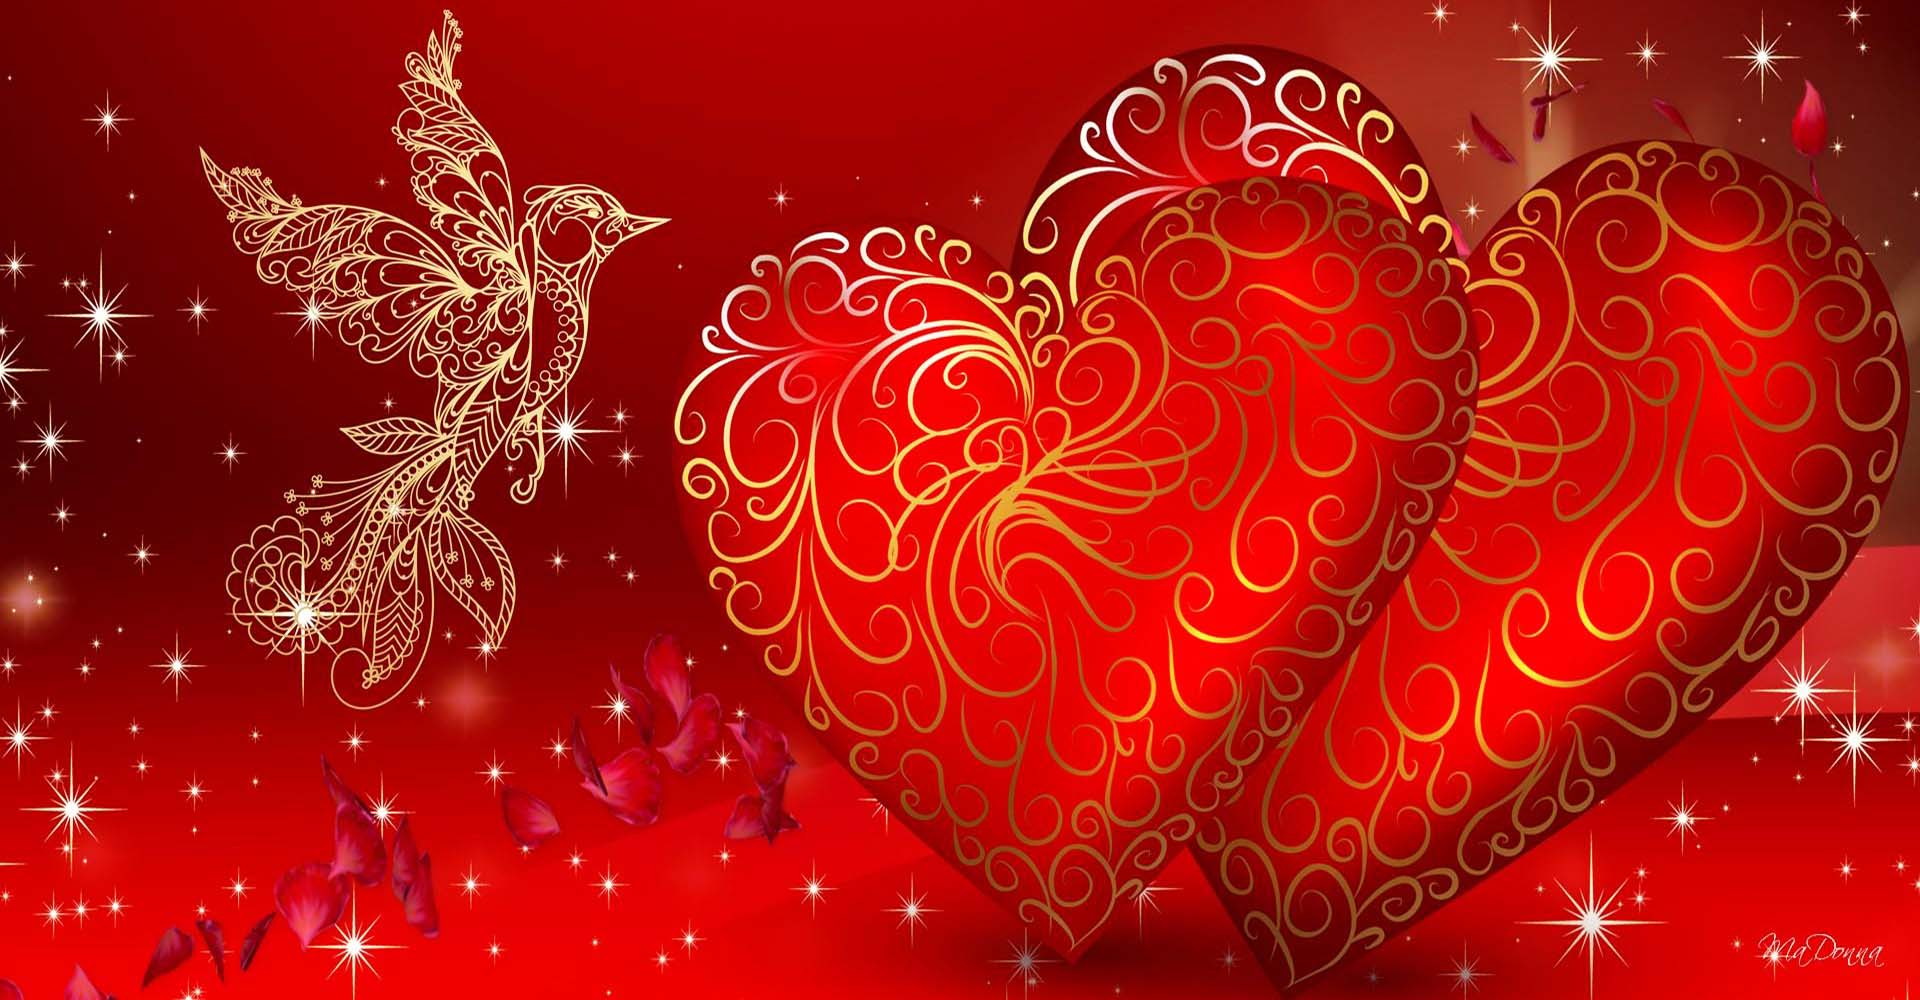 Love Heart Wallpapers Top Free Love Heart Backgrounds